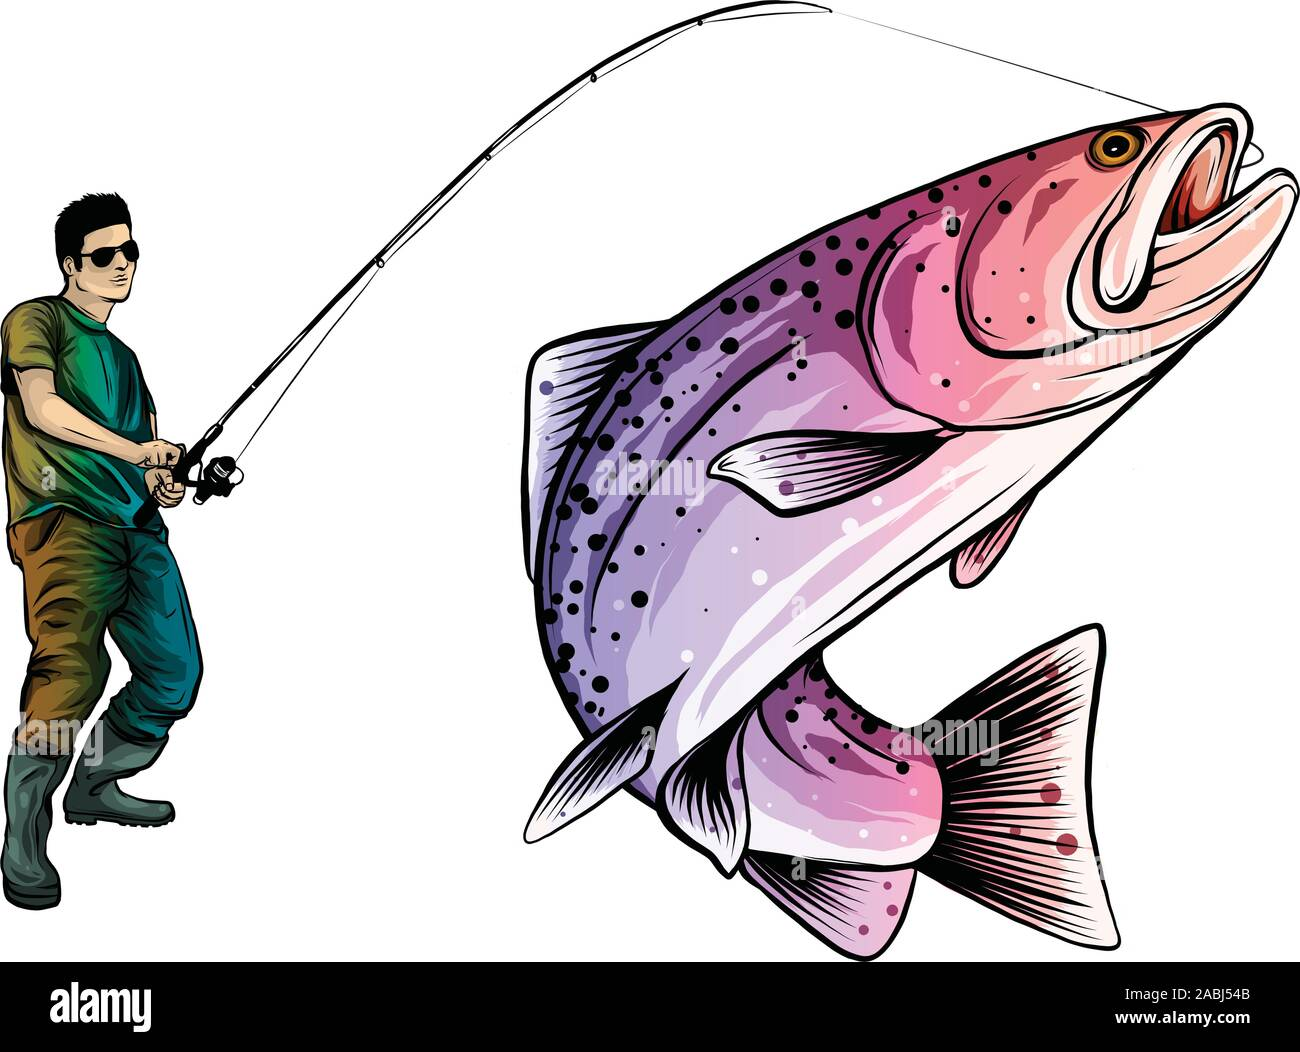 29+ Fisherman Vector